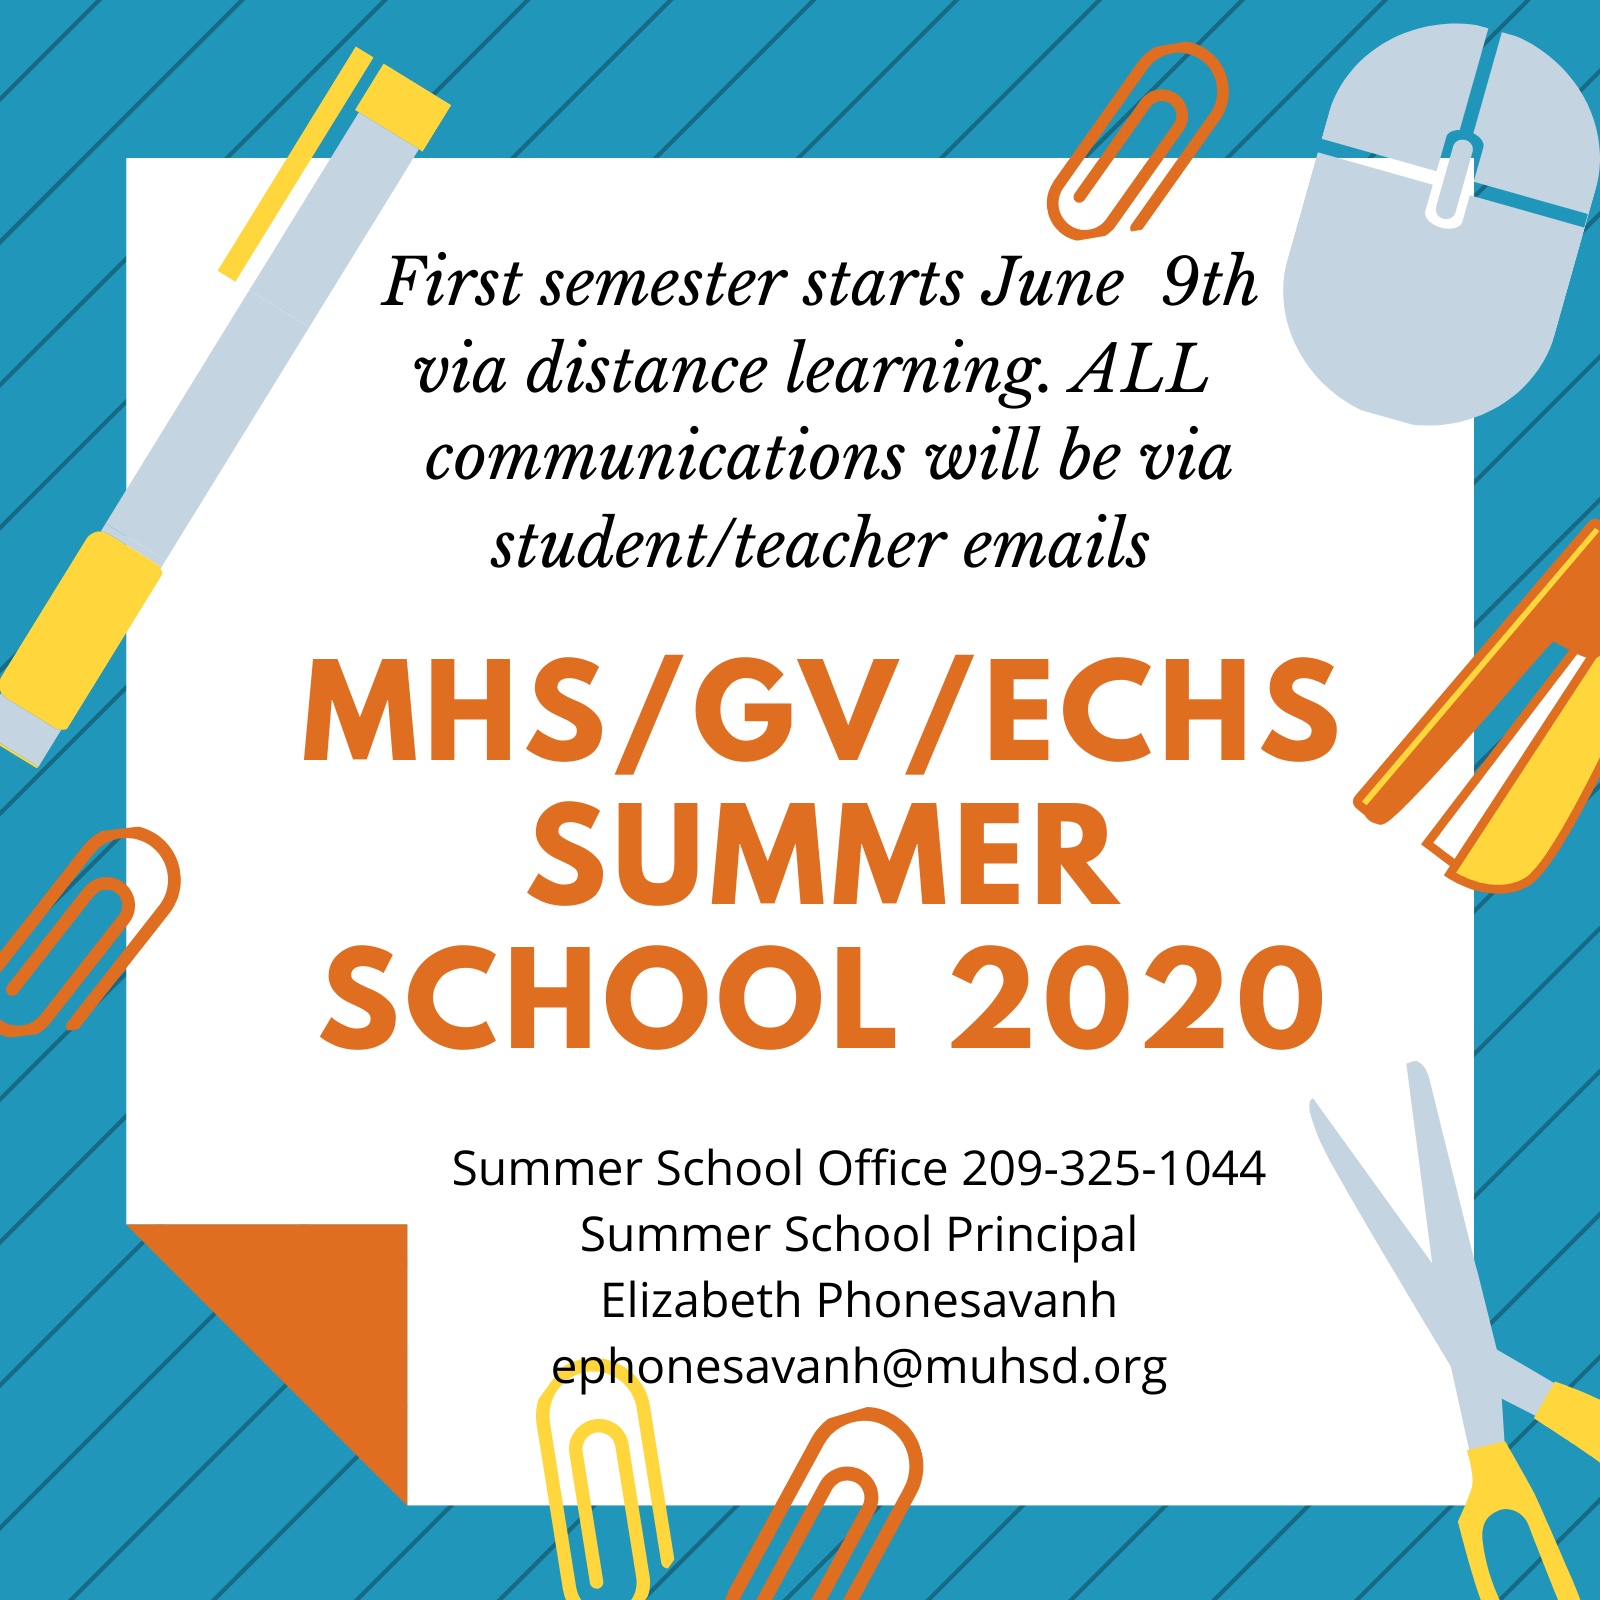 Summer School 2020 Post